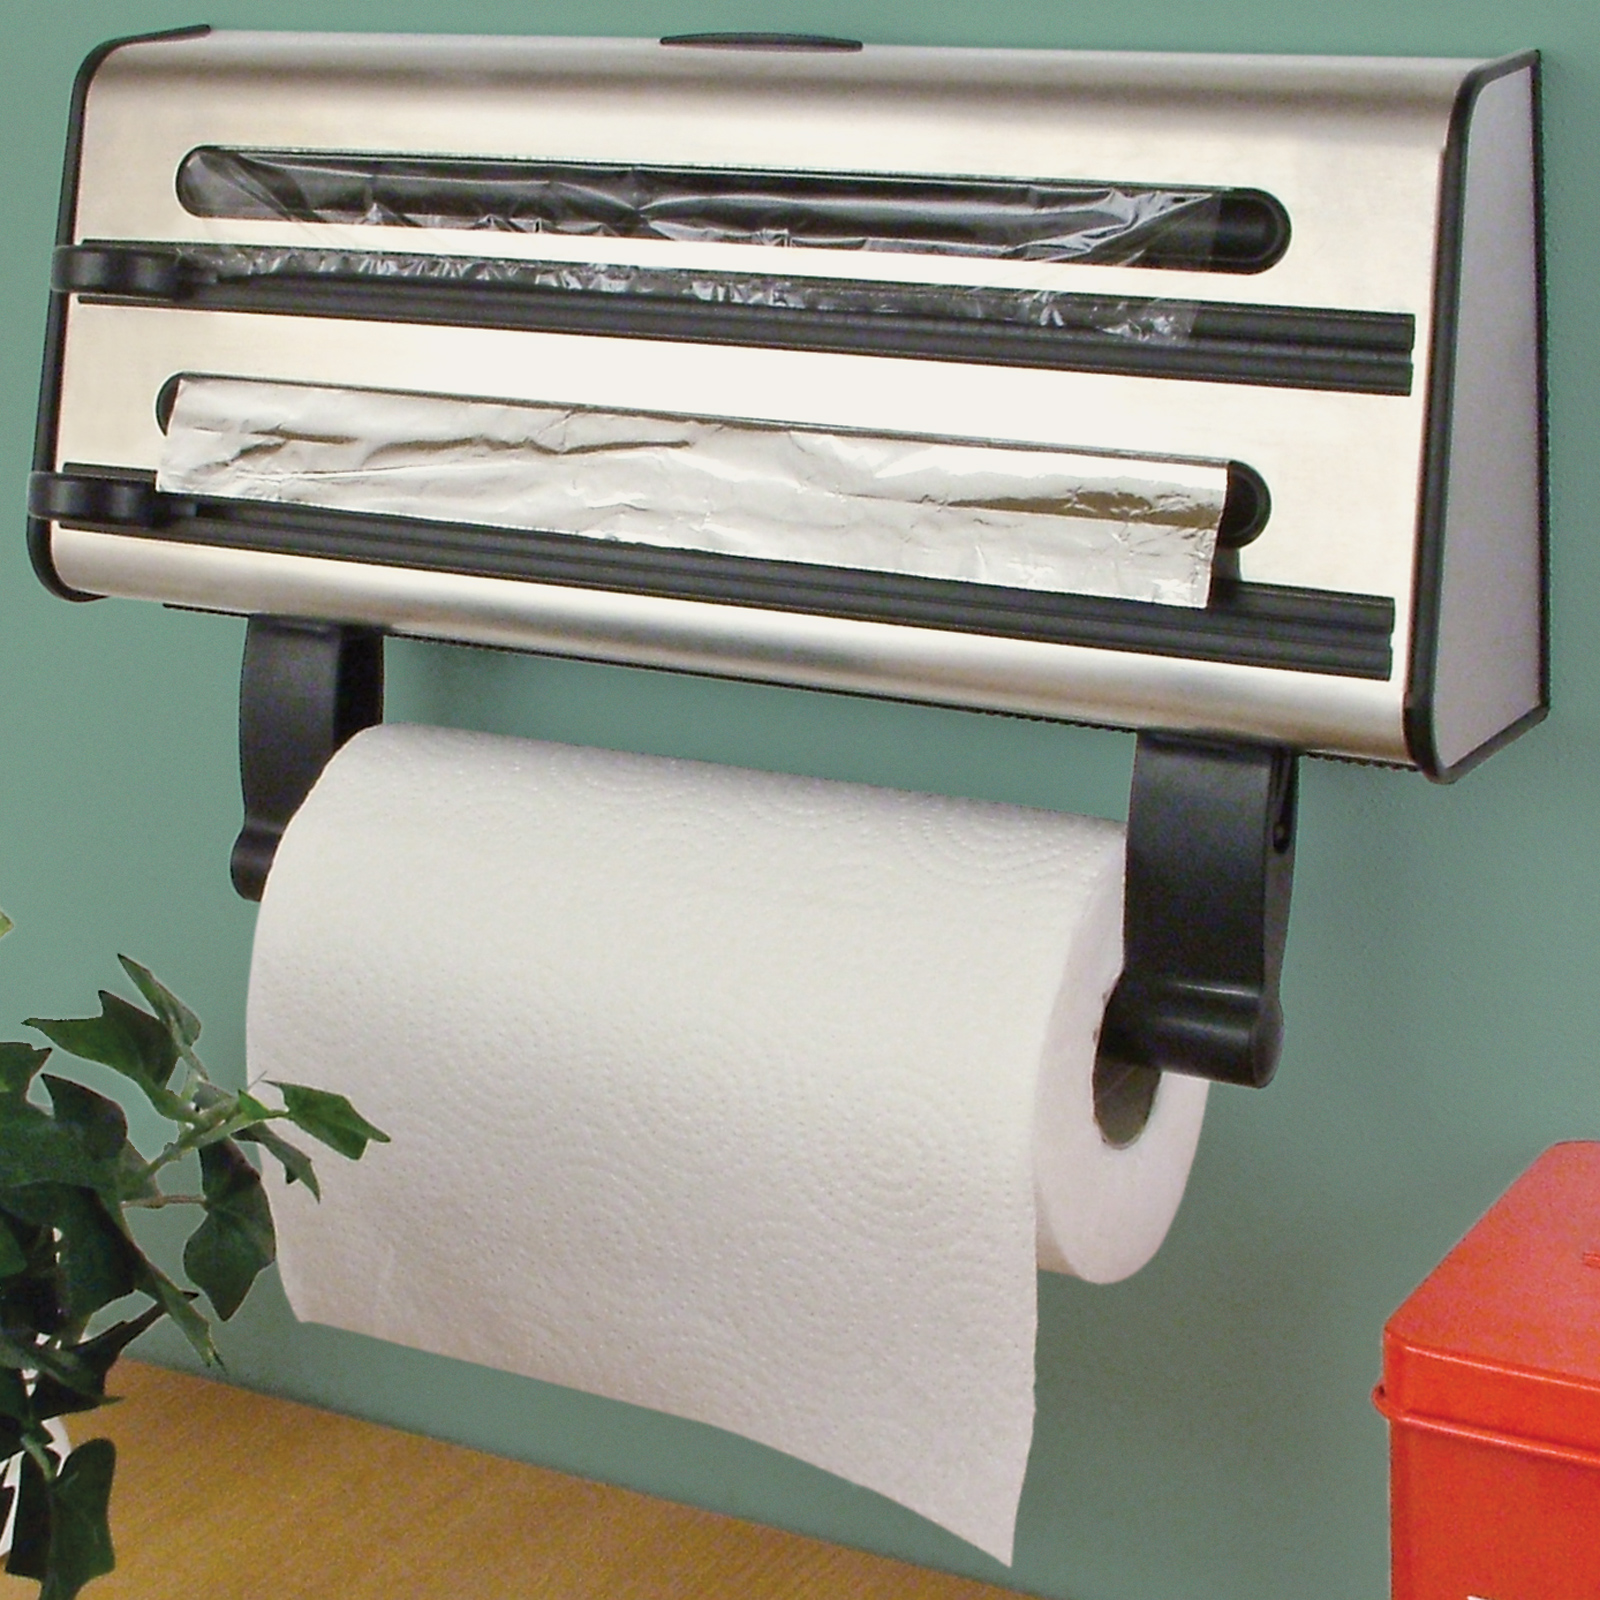 Kitchen Triple Roll Dispenser Cling Film Tin Foil Towel Holder - Kitchen paper towel dispenser